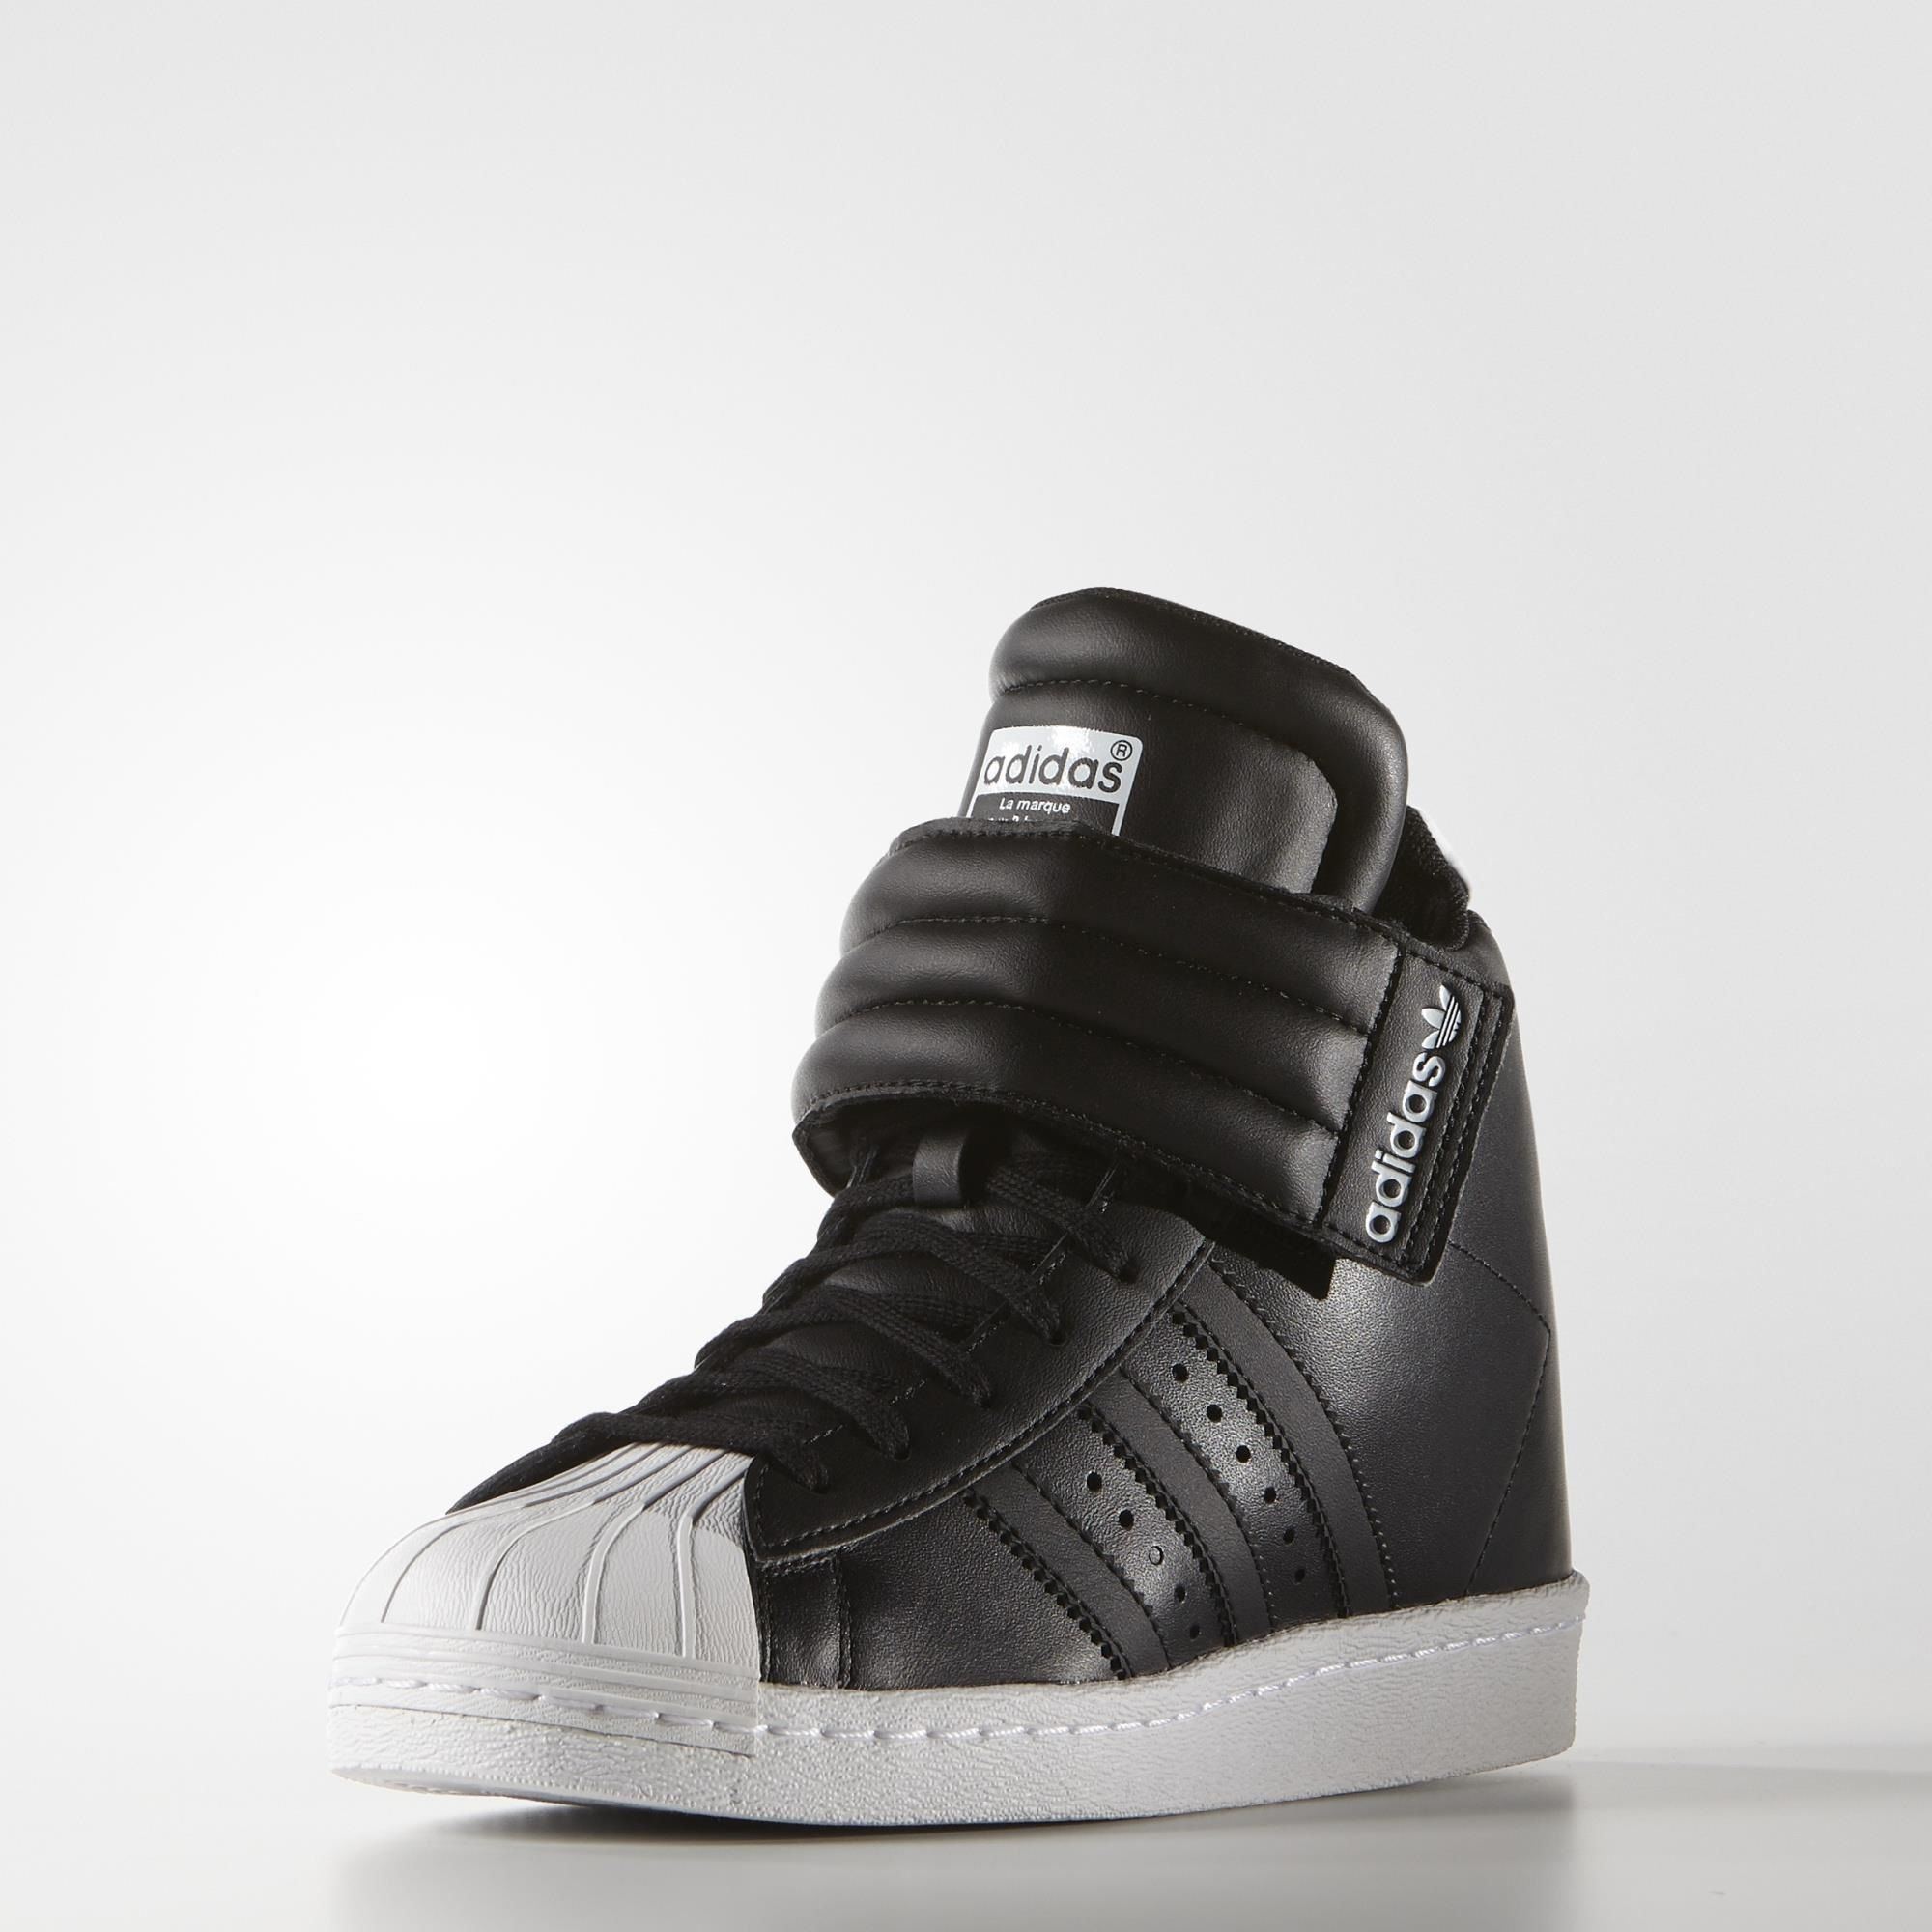 sports shoes f1fa7 89051 adidas Superstar Up Strap Shoes - I WANT THIS SHOE!